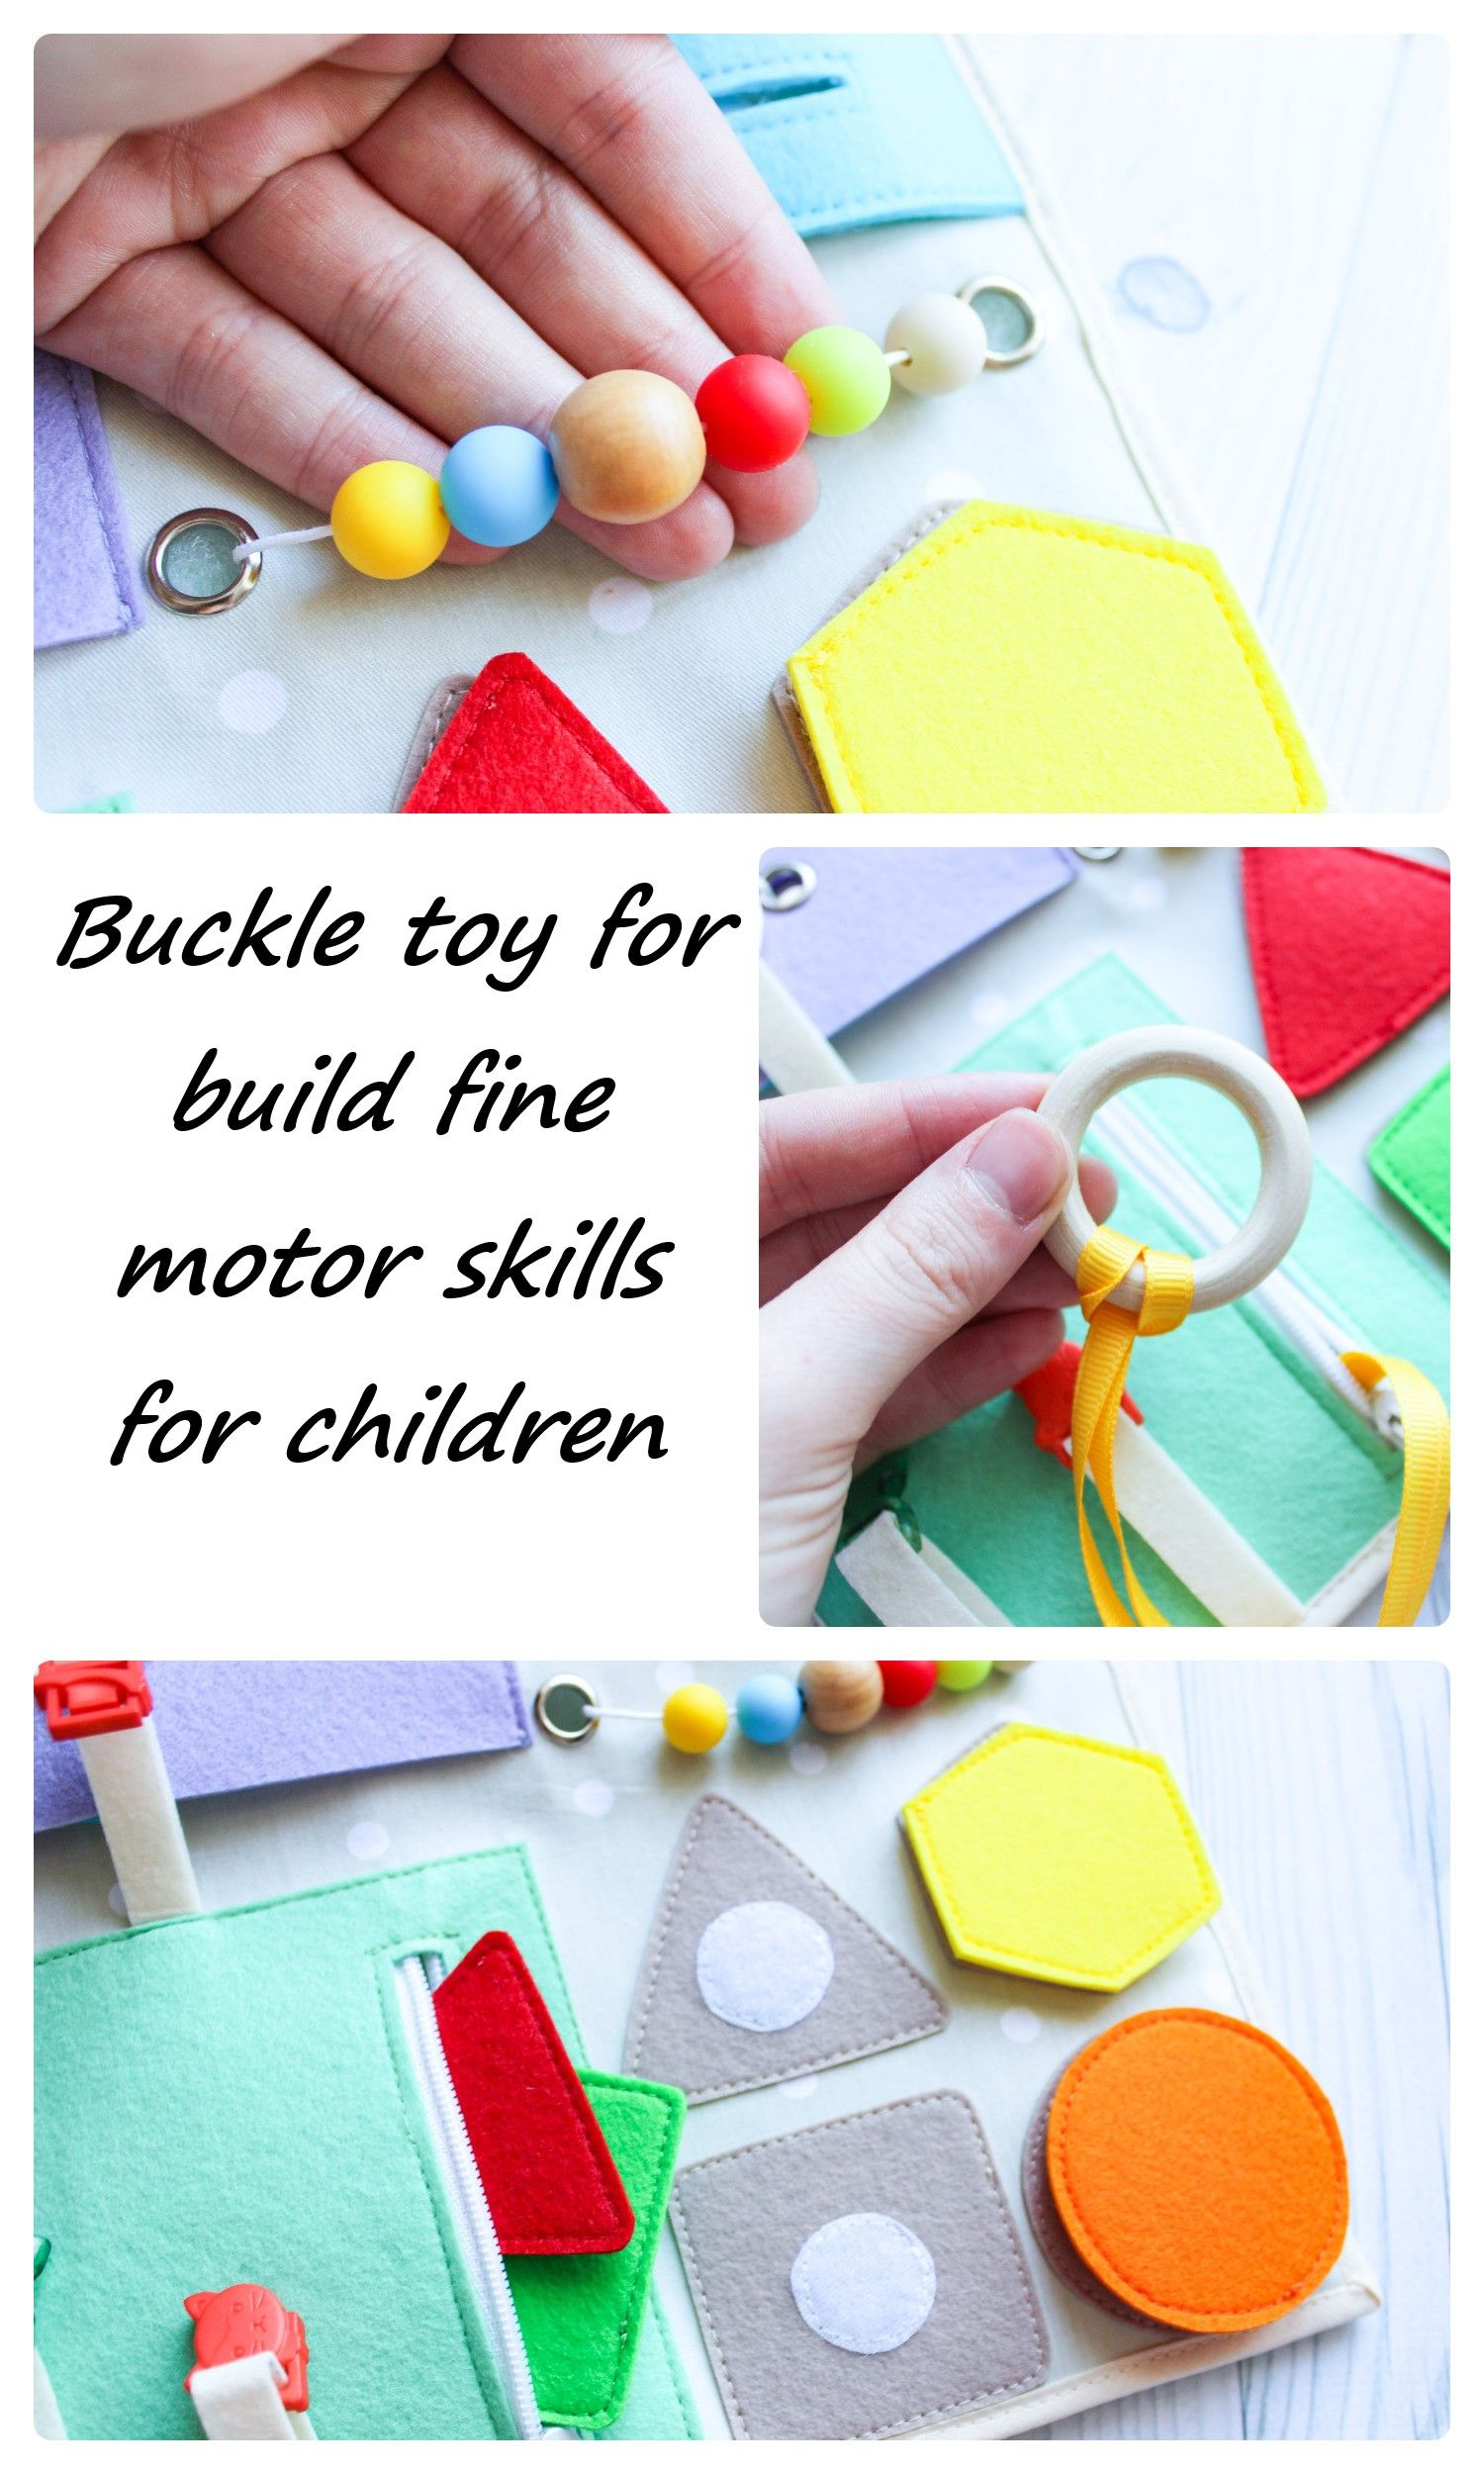 Buckle Toy For Build Fine Motor Skills For Children From 1